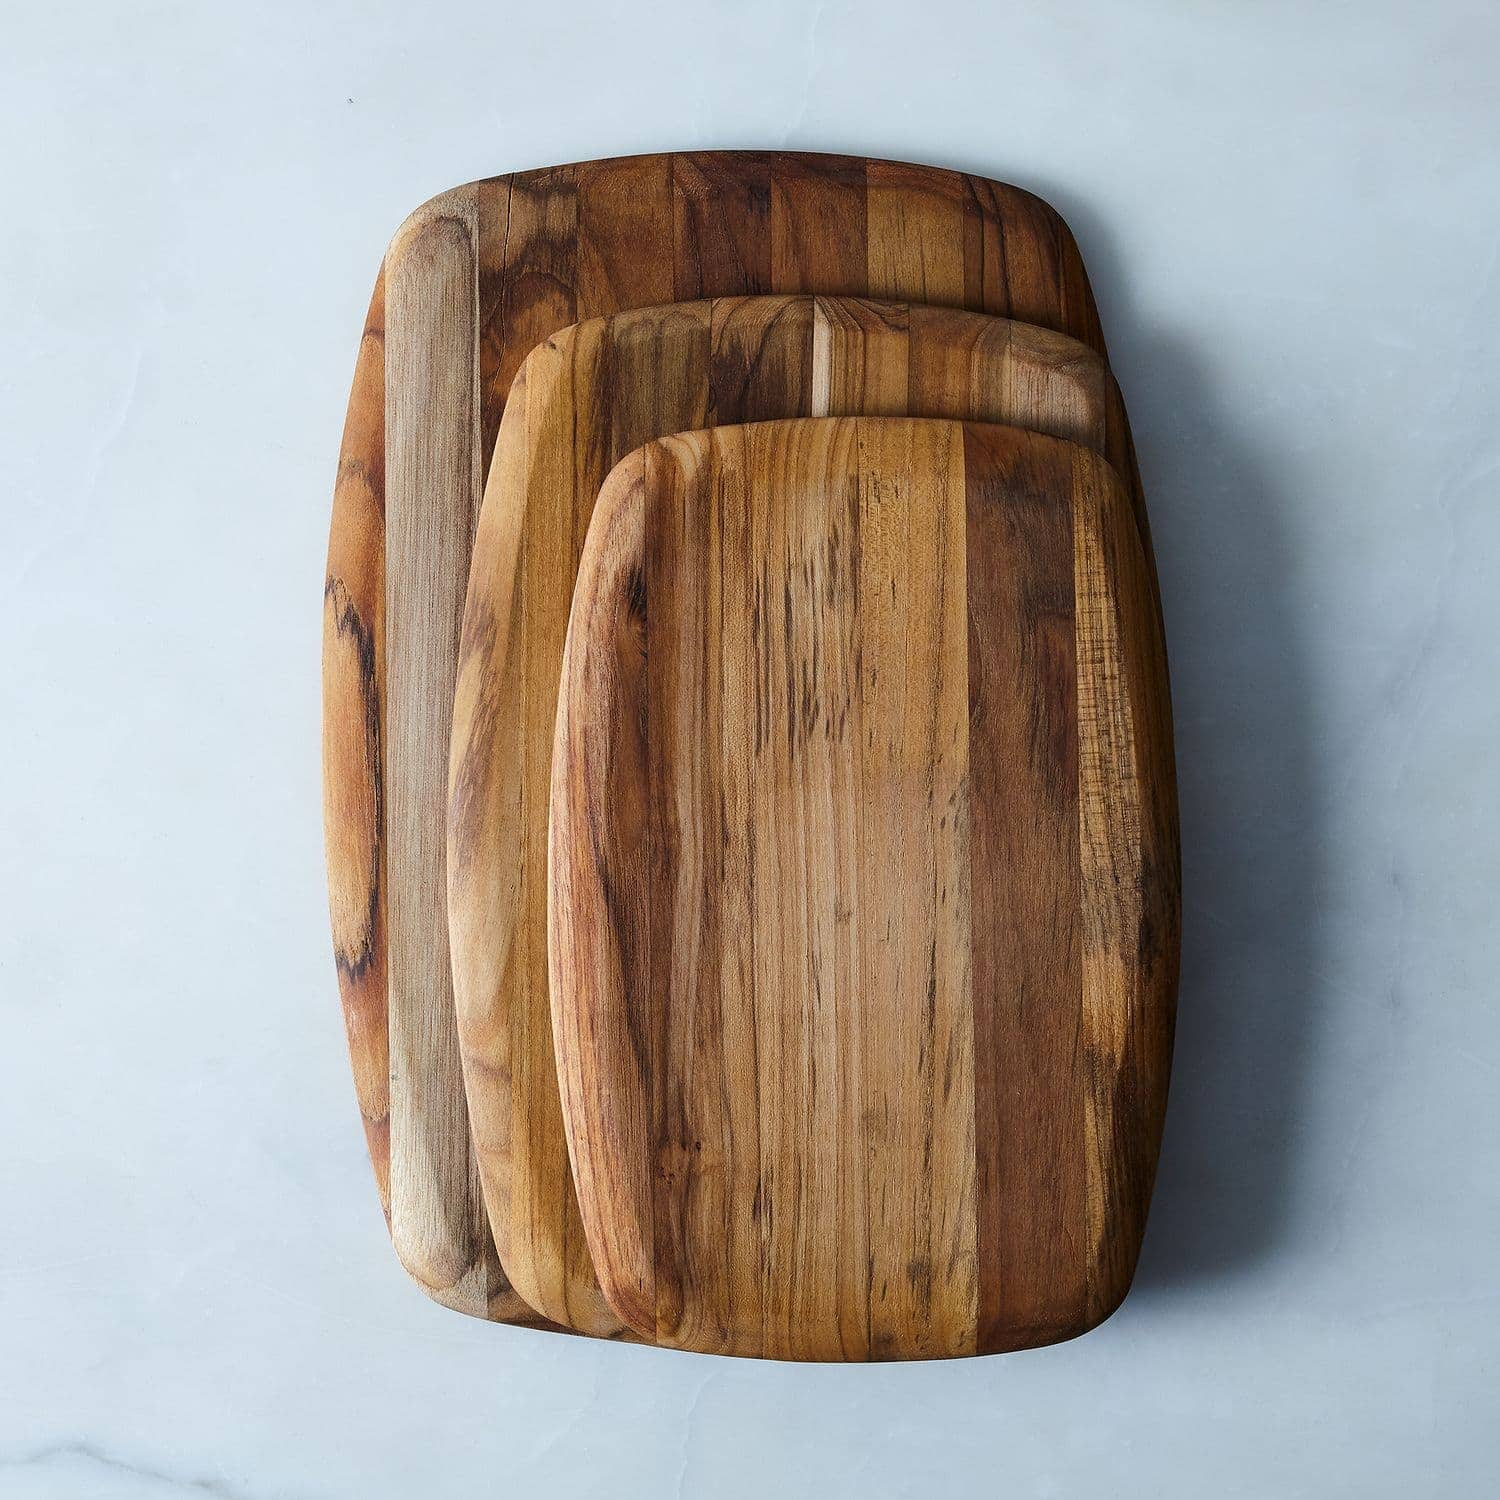 Different size cutting boards